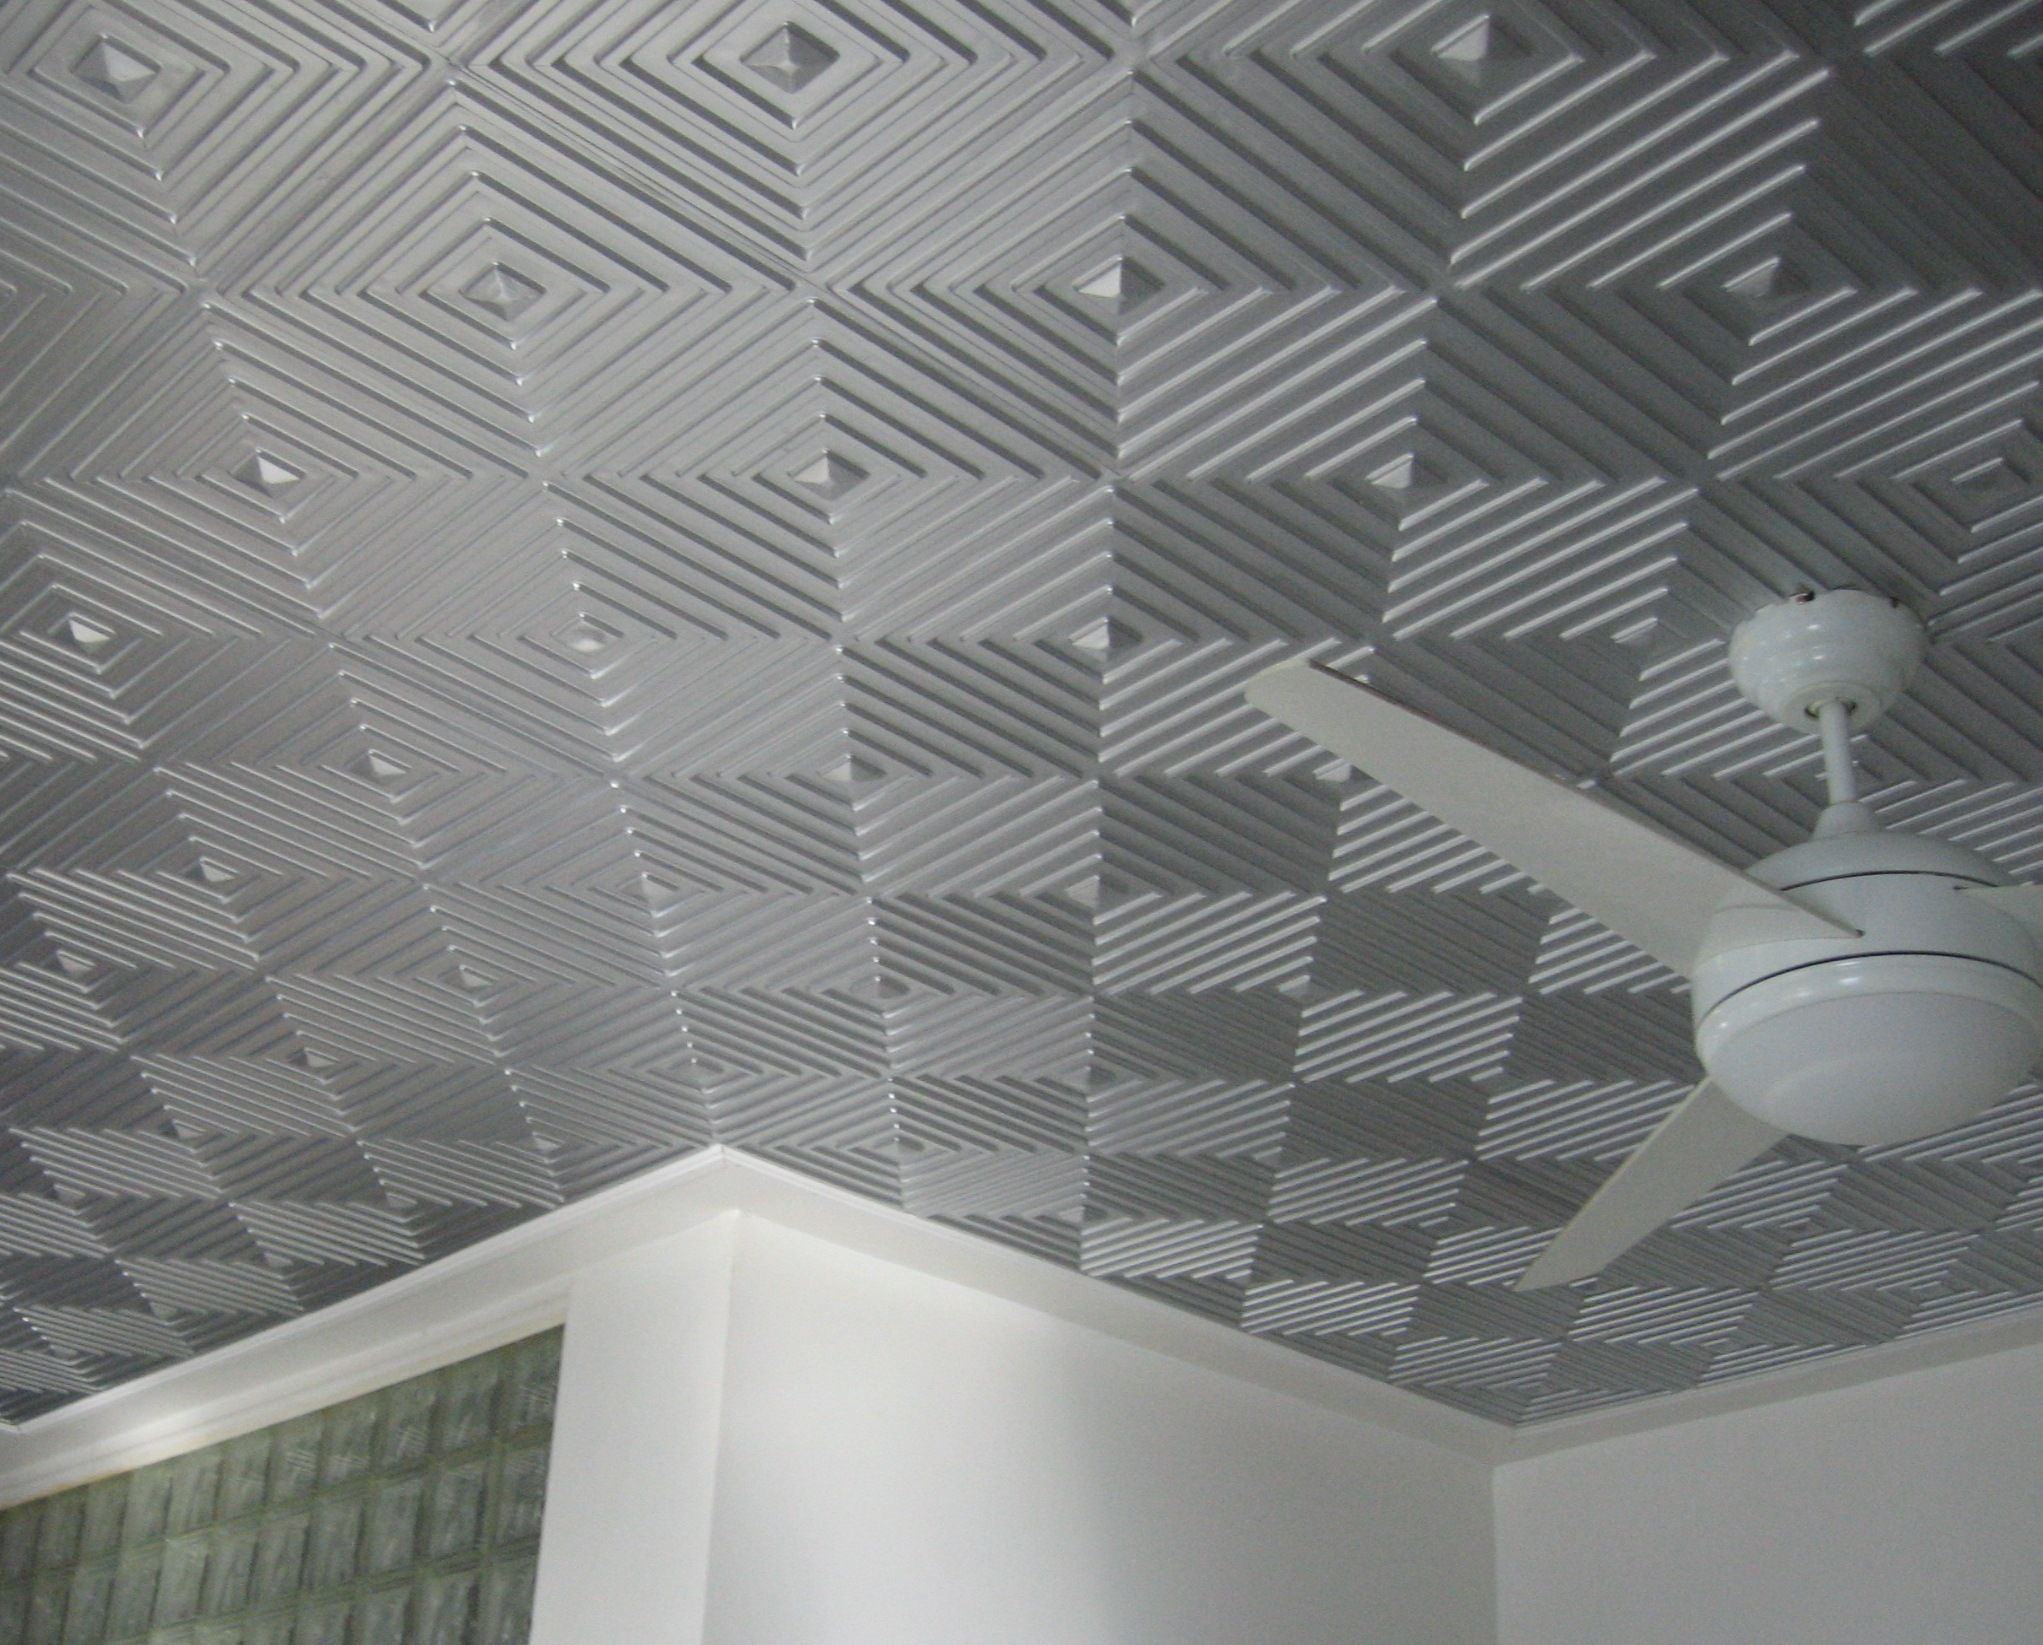 Awesome gray silver ceiling tile idea with cool geometric stripes ceiling designhave a good looking ceiling with elegant faux tin ceiling tiles ideas dailygadgetfo Image collections